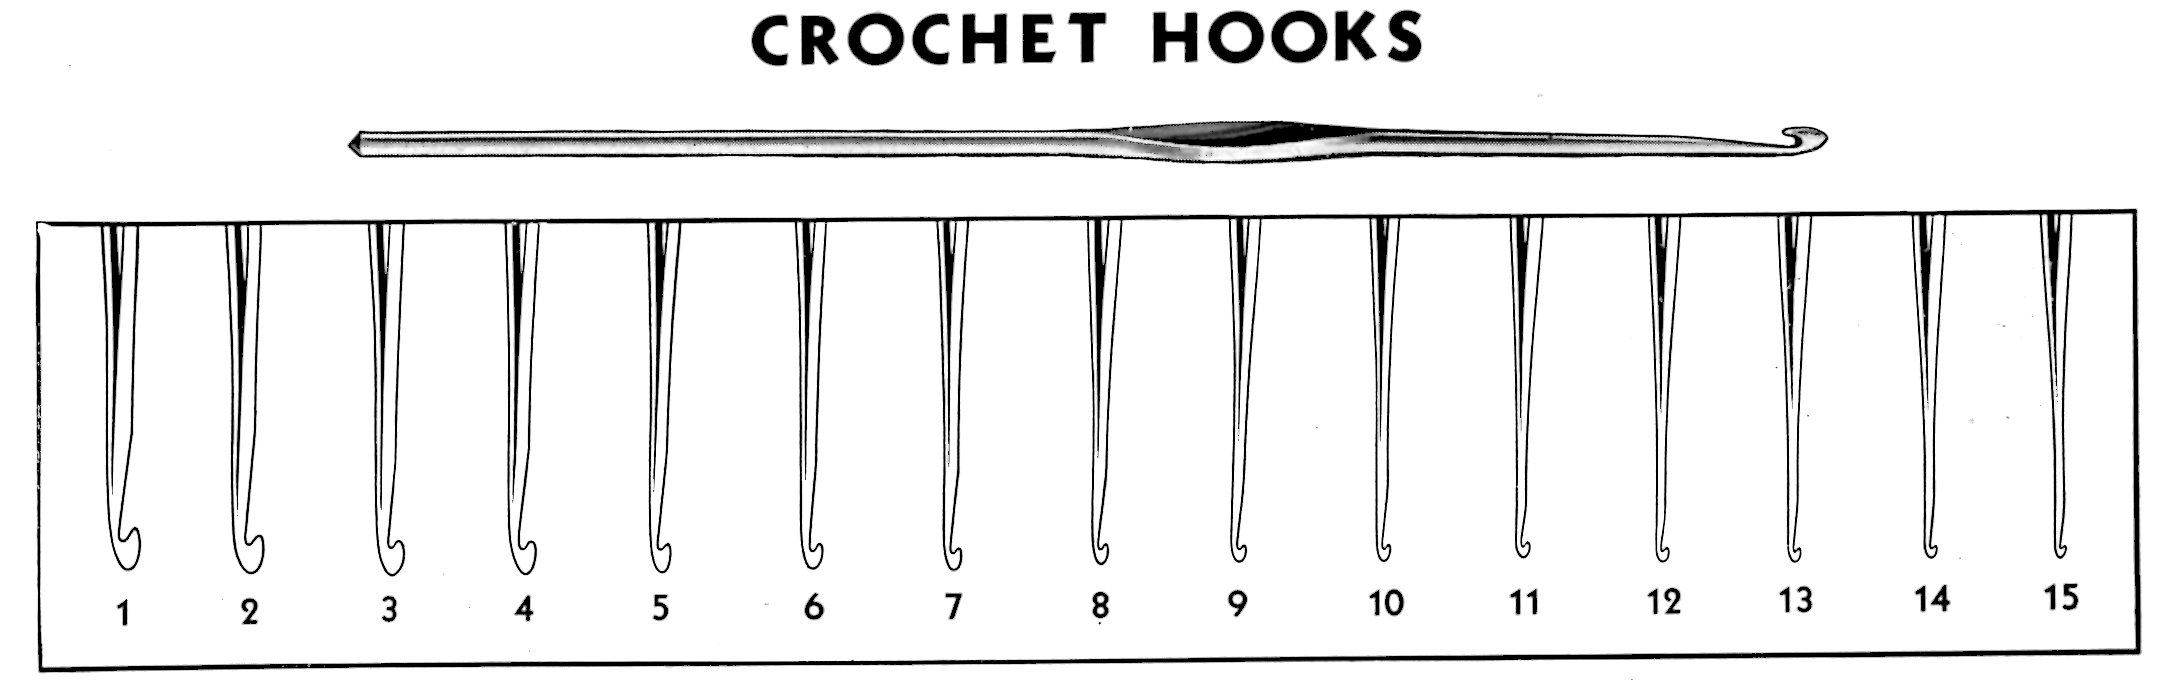 Crochet Needle Sizes : Crochet Hook Size Chart Car Interior Design